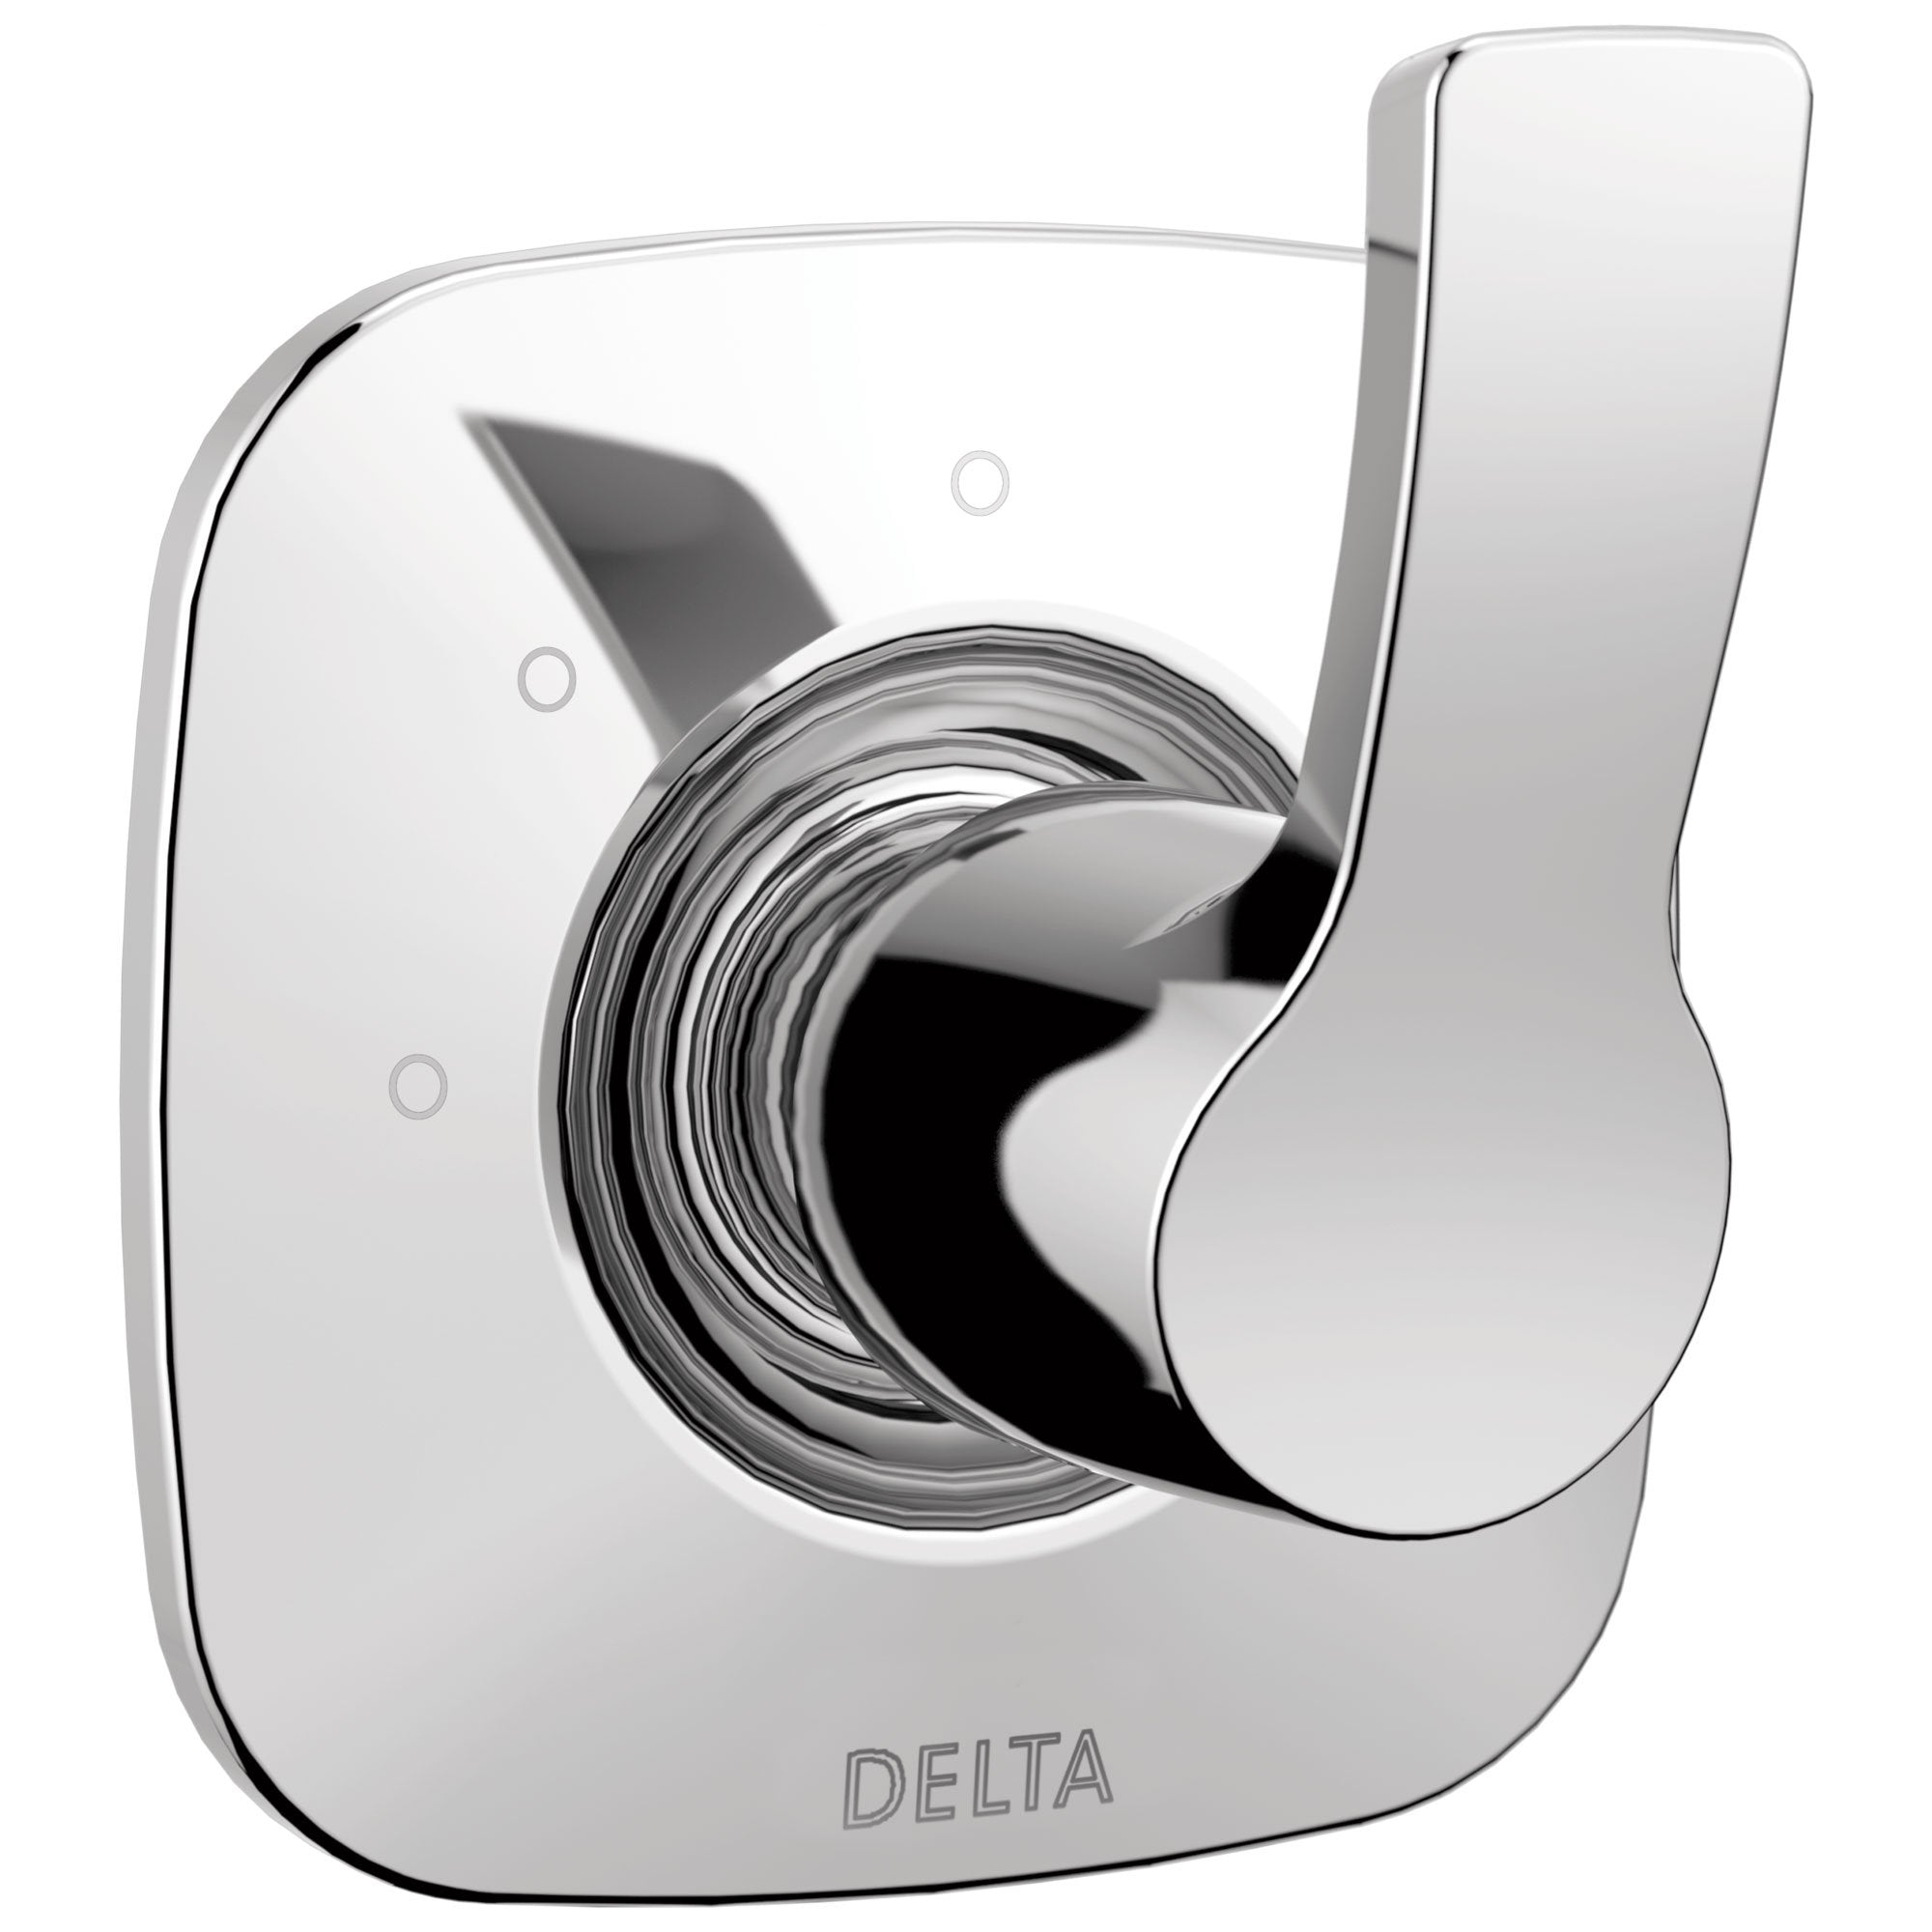 Delta Tesla Collection Chrome Finish Modern 3-Setting 2-Port Single Handle Shower Diverter Includes Rough-in Valve D2061V